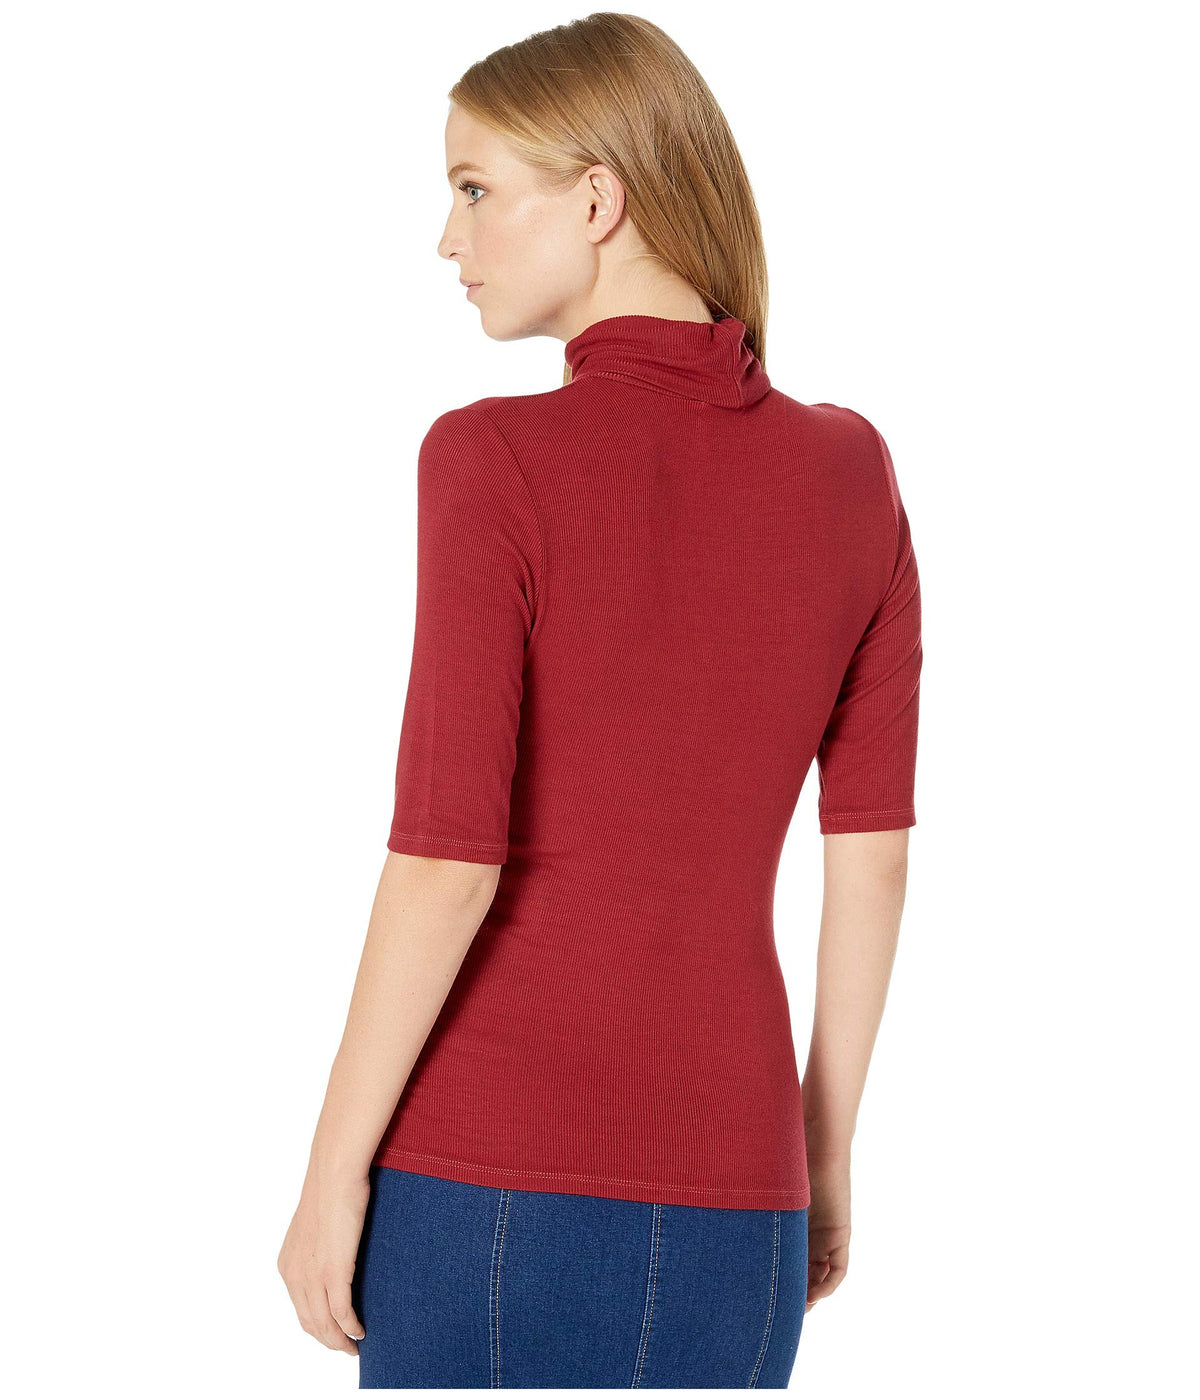 2x1 Rib Gabriella Elbow Sleeve Turtleneck